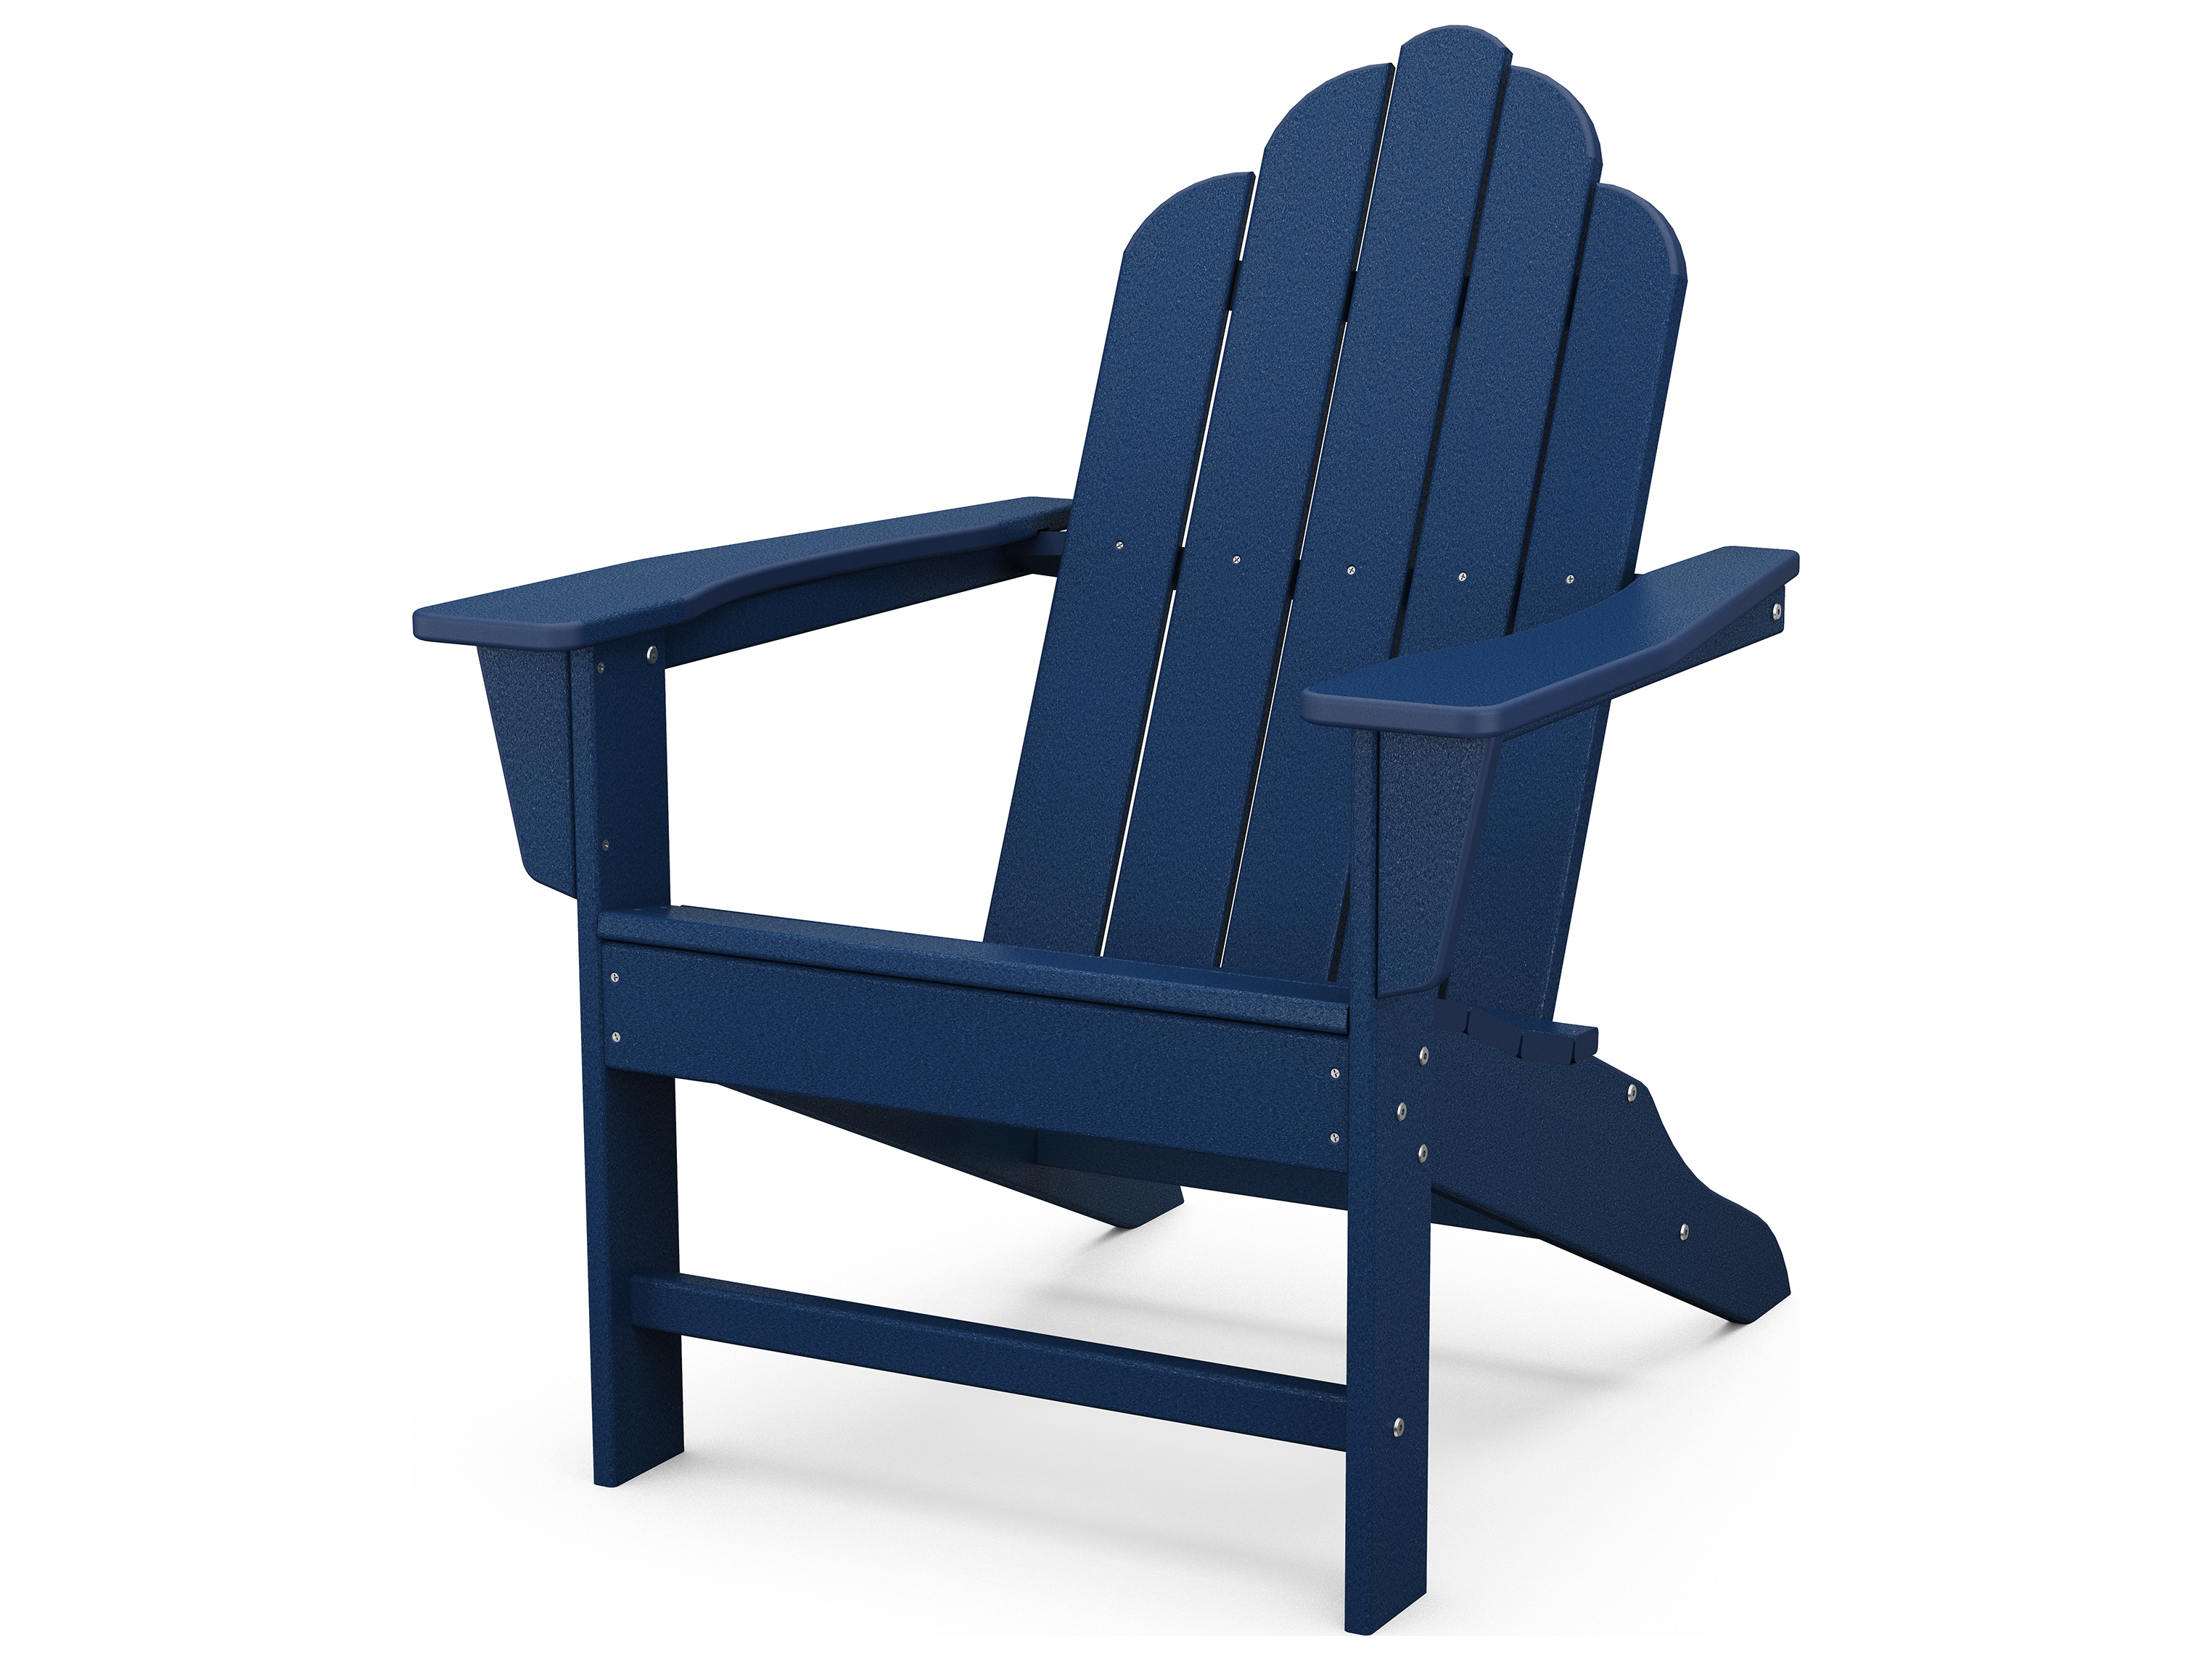 Polywood 174 Long Island Recycled Plastic Adirondack Chair